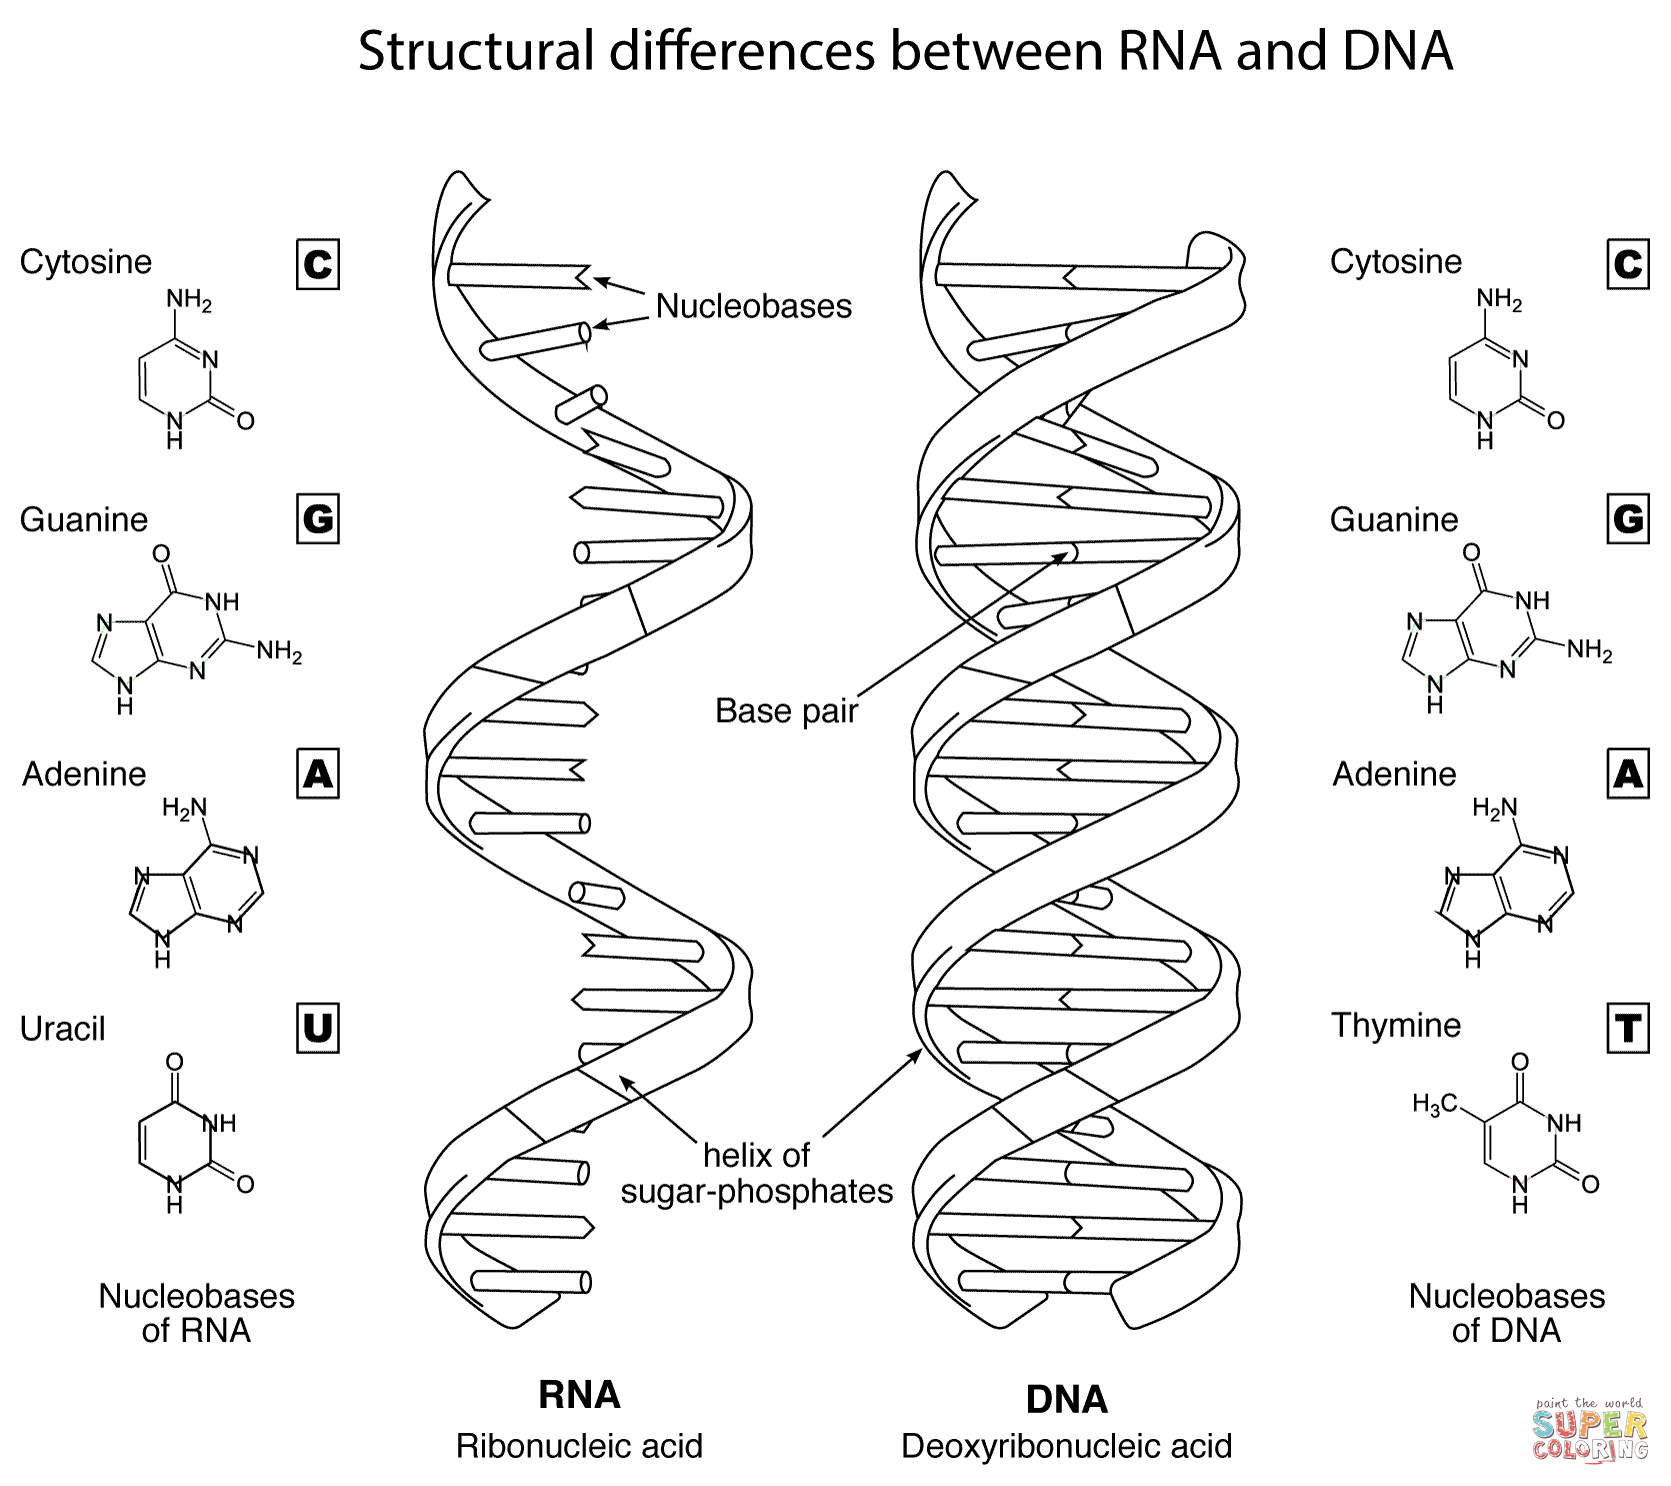 Dna molecule drawing at getdrawings free for personal use dna 1671x1486 structural differences between rna and dna coloring page free ccuart Gallery